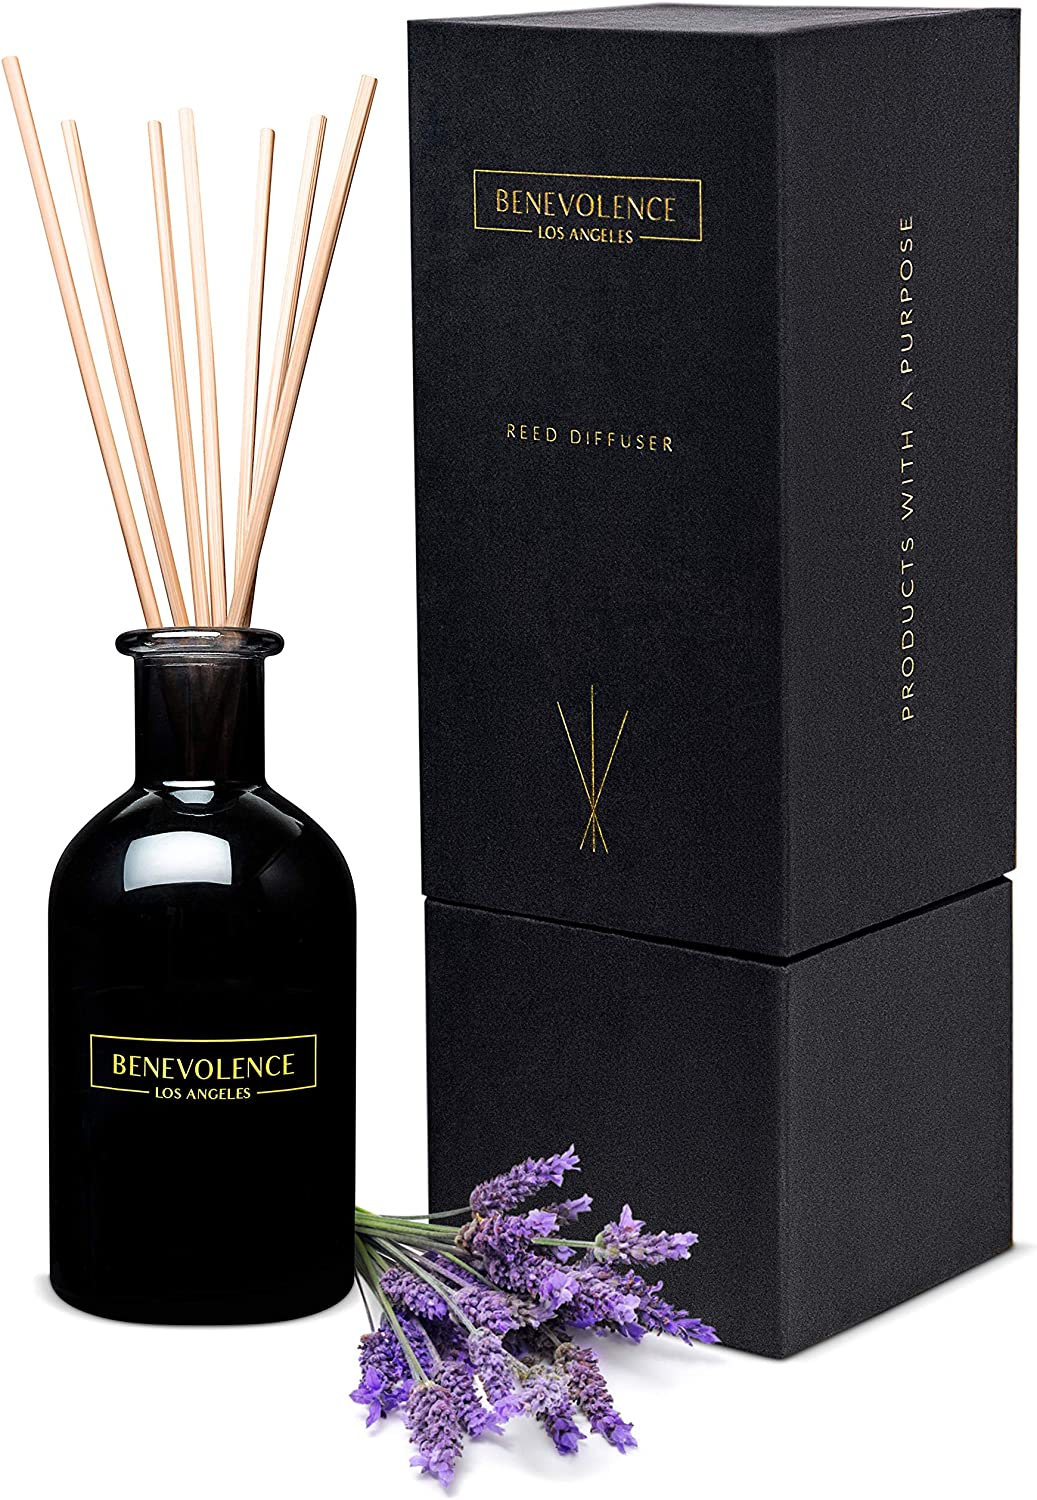 Benevolence LA Reed Diffusers for Home   Lavender & Eucalyptus Fragrance Diffuser   Aromatherapy Scented Oil Reed Diffuser Set   Sticks Diffuser